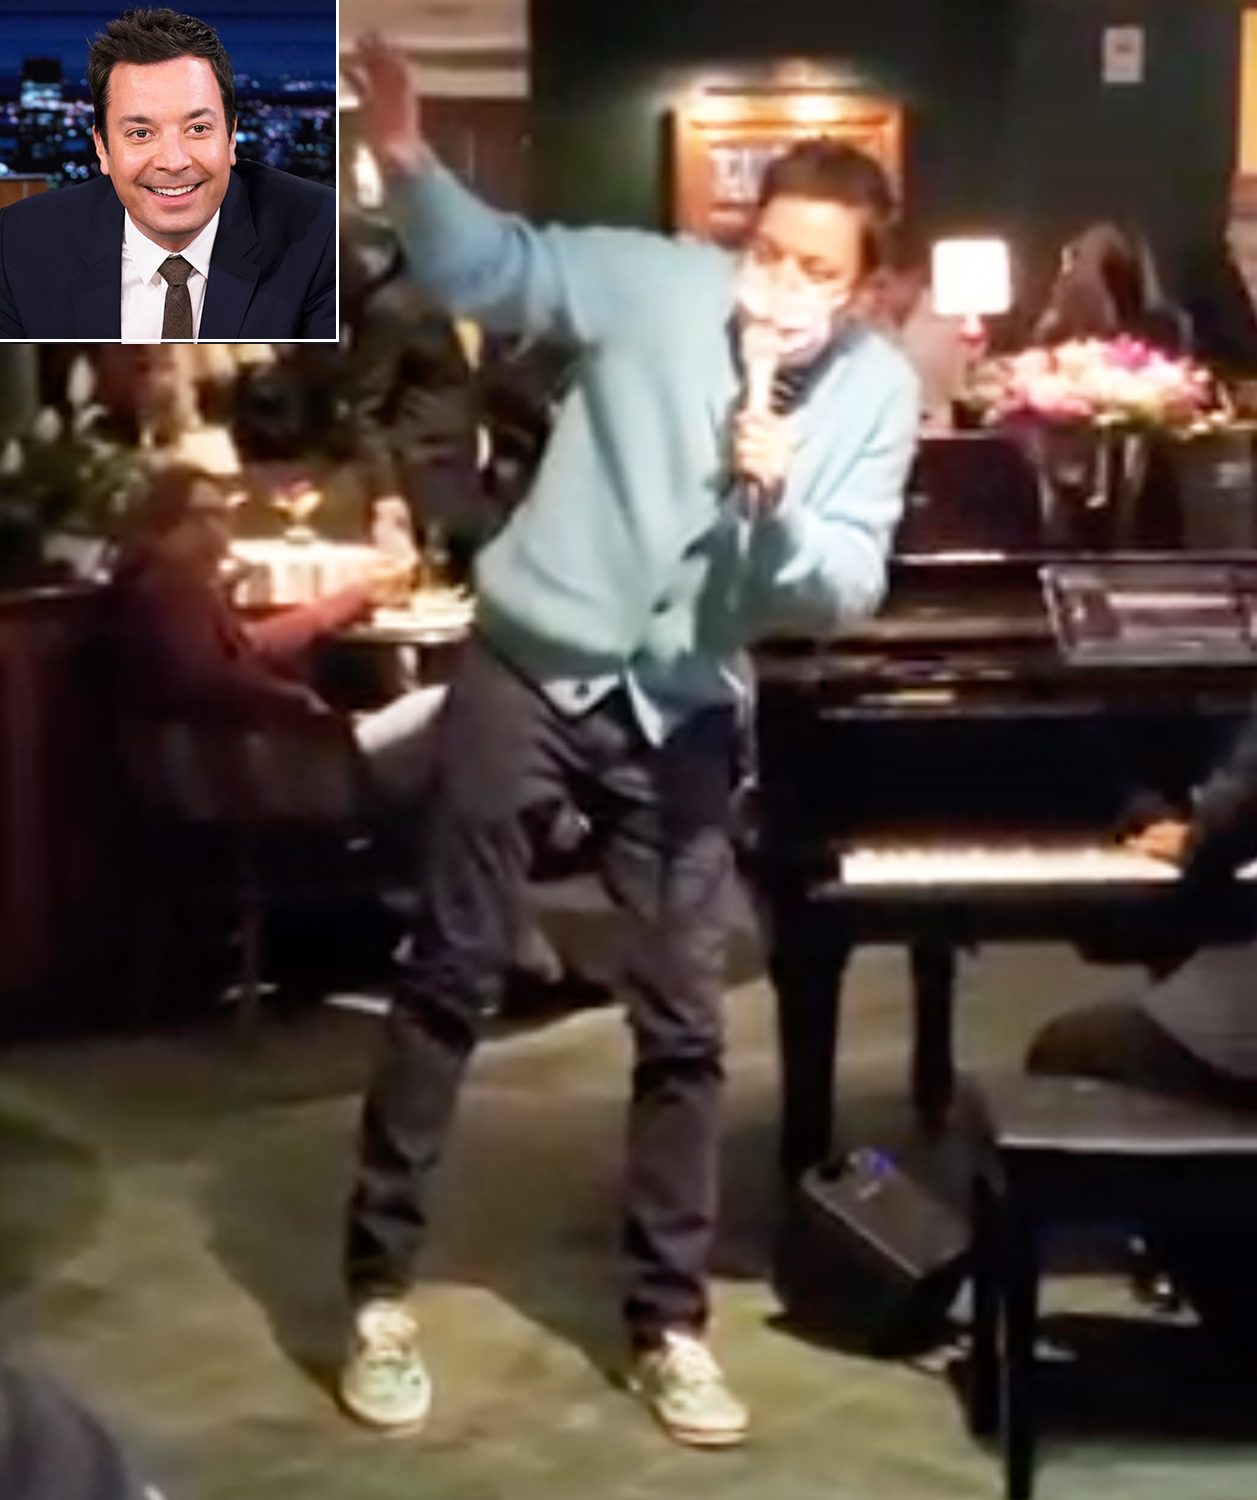 Jimmy Fallon Leads Impromptu 'Sweet Caroline' Performance at Polo Lounge in Beverly Hills